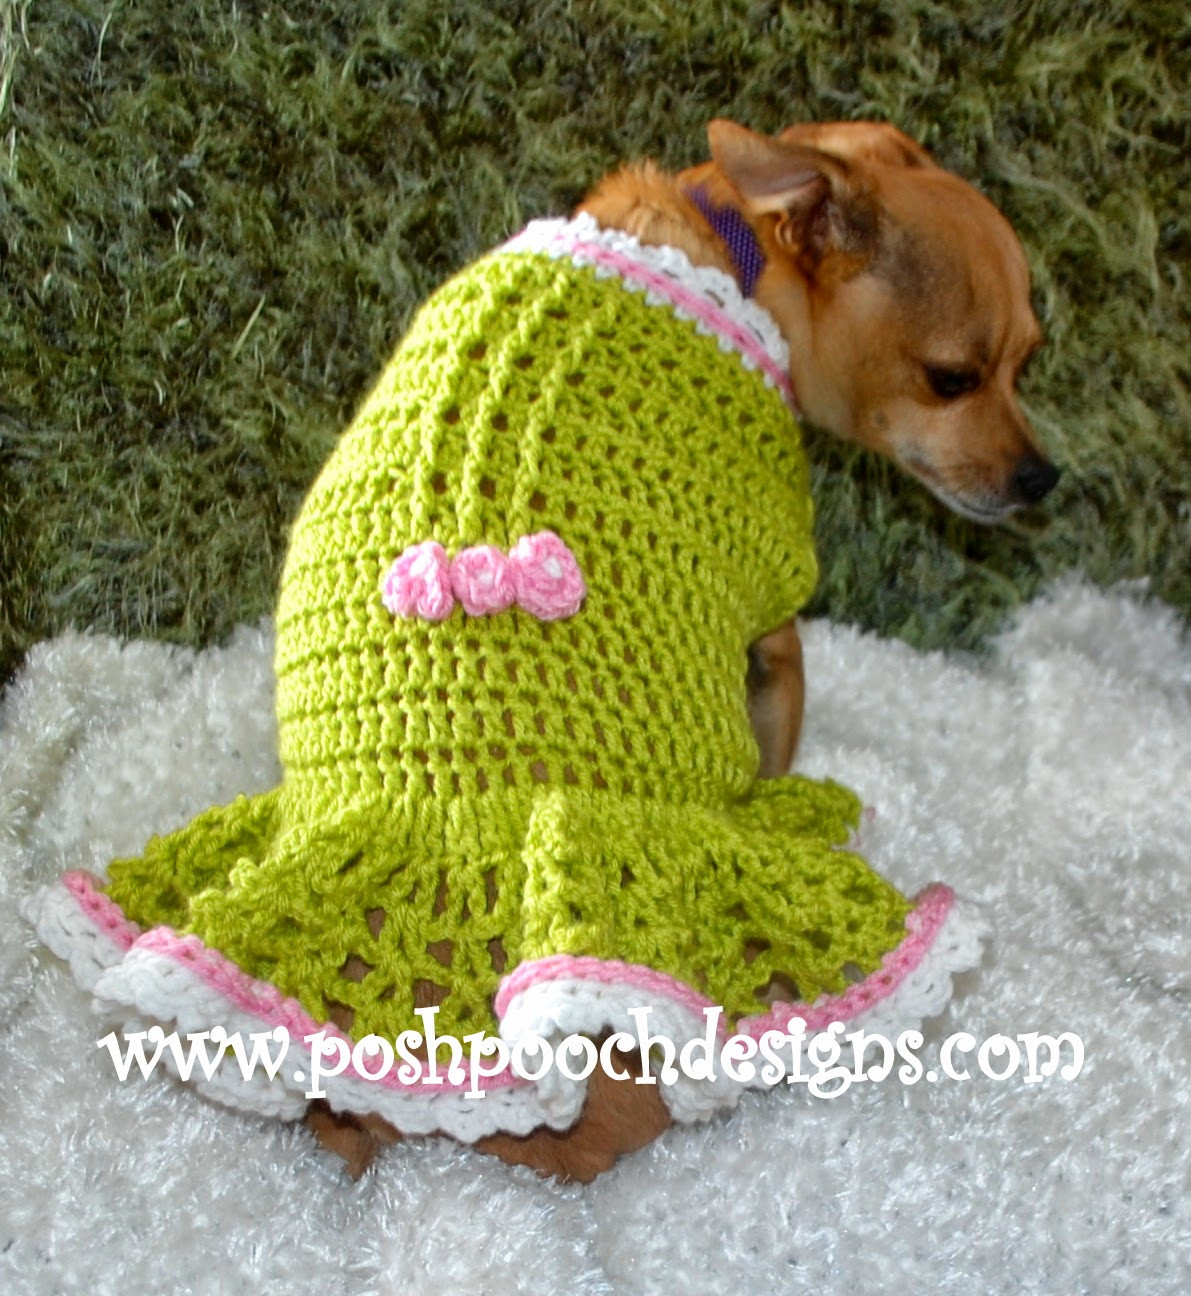 Crochet Dog Sweater Pattern Best Of Posh Pooch Designs Dog Clothes New Release Amber Spring Of Marvelous 47 Images Crochet Dog Sweater Pattern